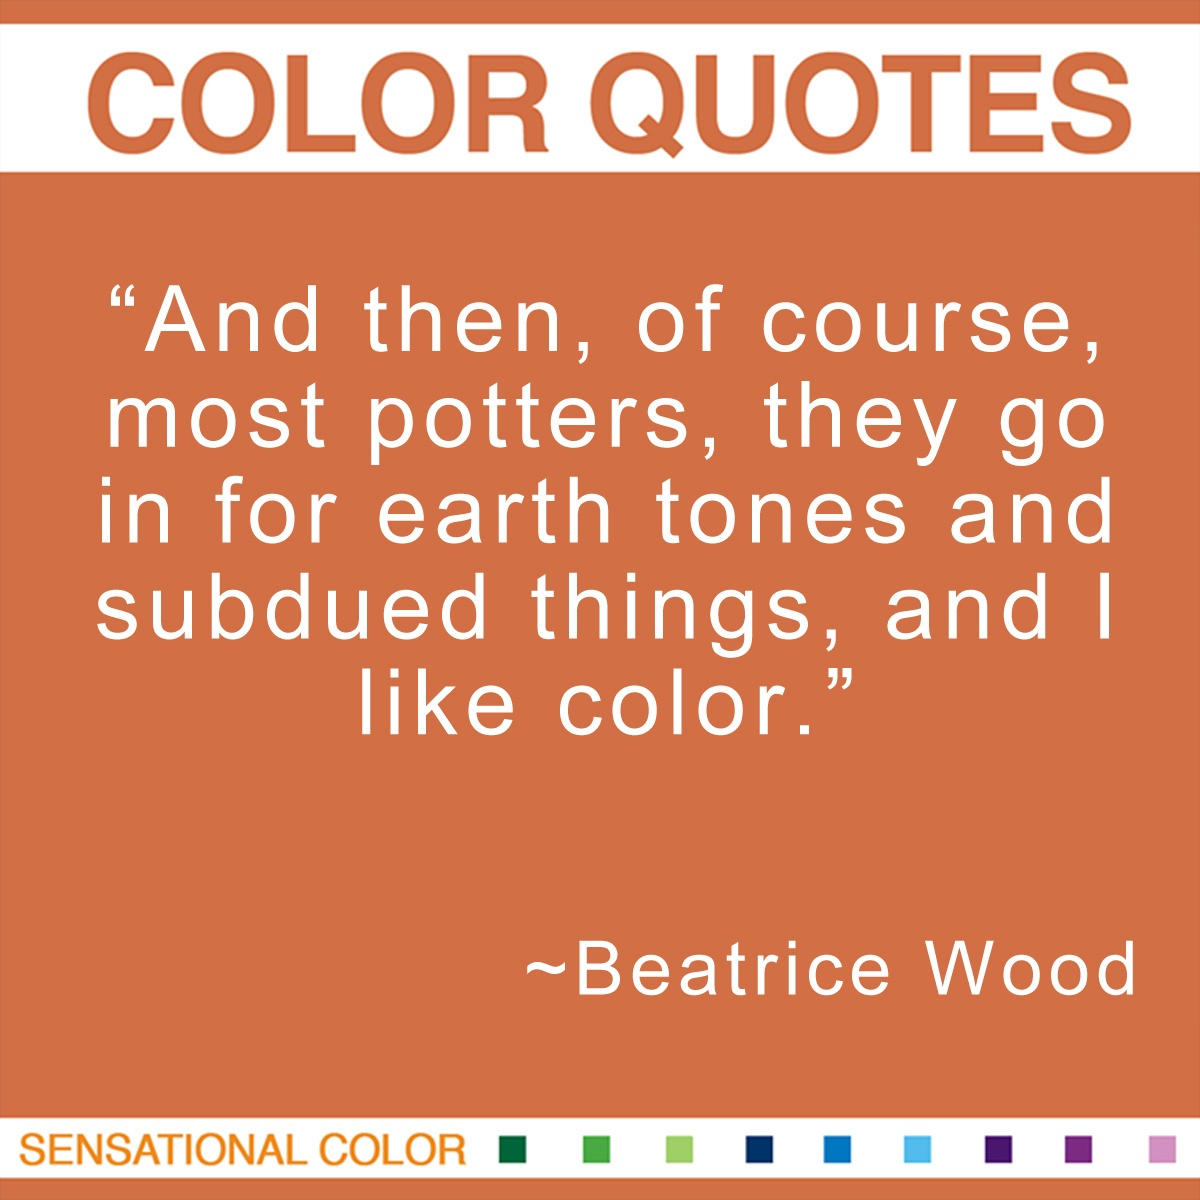 """And then, of course, most potters, they go in for earth tones and subdued things, and I like color."" - Beatrice Wood"